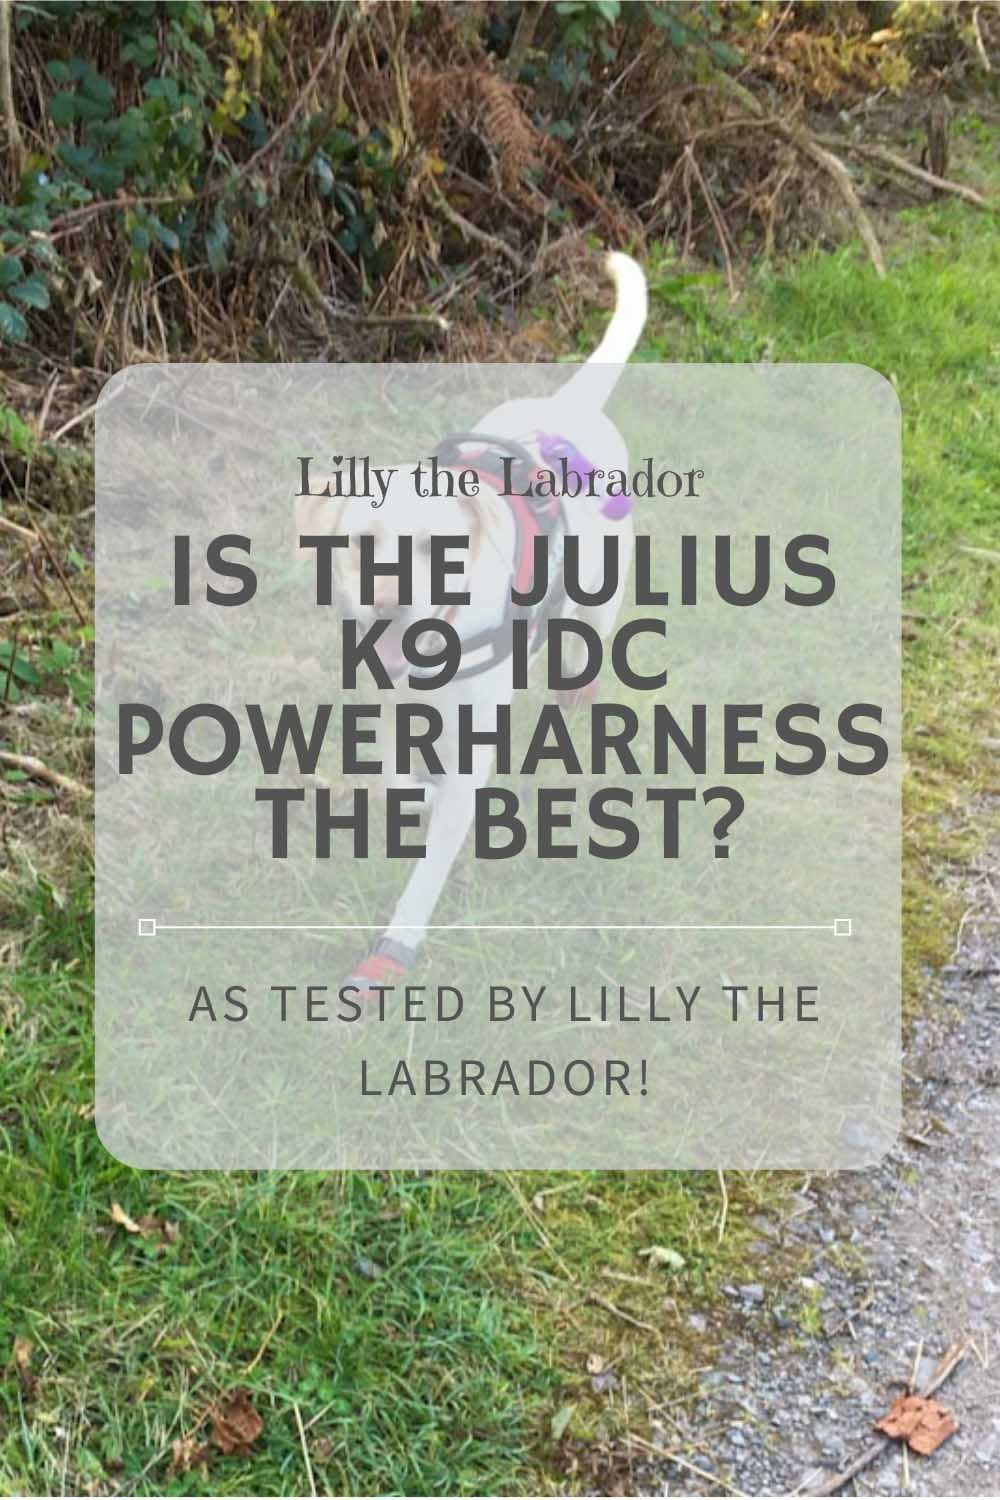 Is The Julius K9 Idc Powerharness The Best Hardness Pinterest In